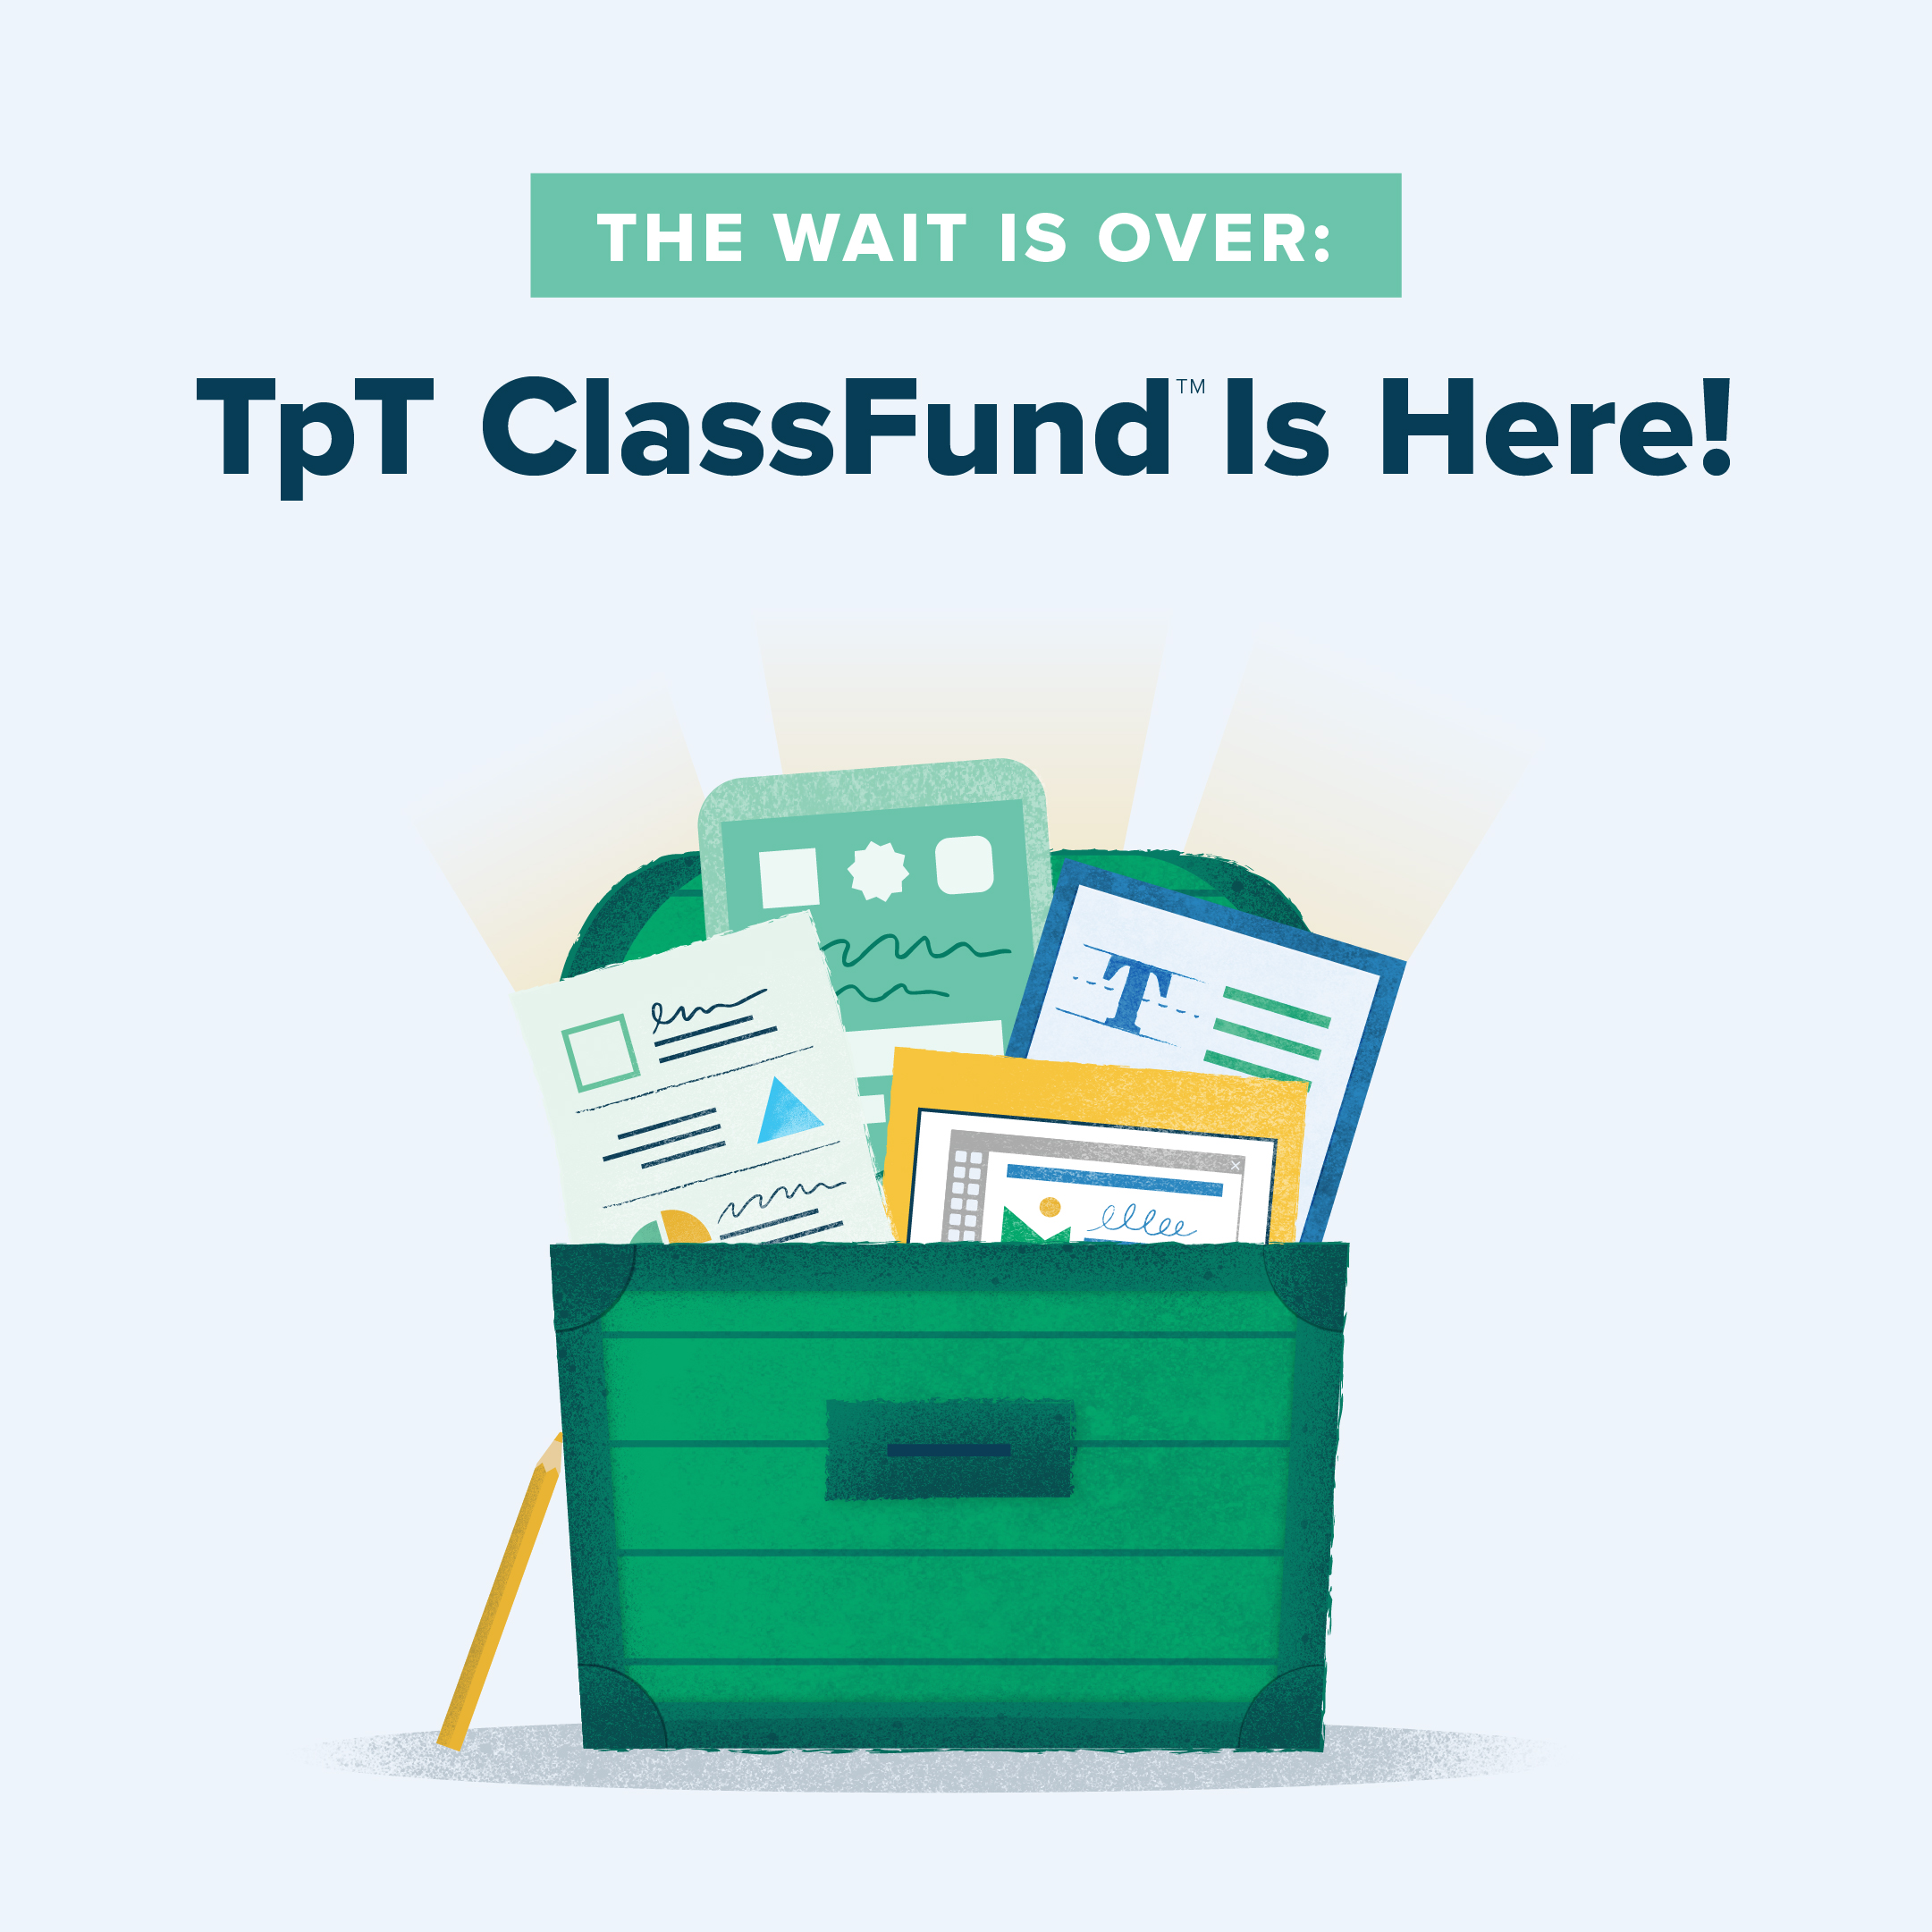 TpT ClassFund Is Here